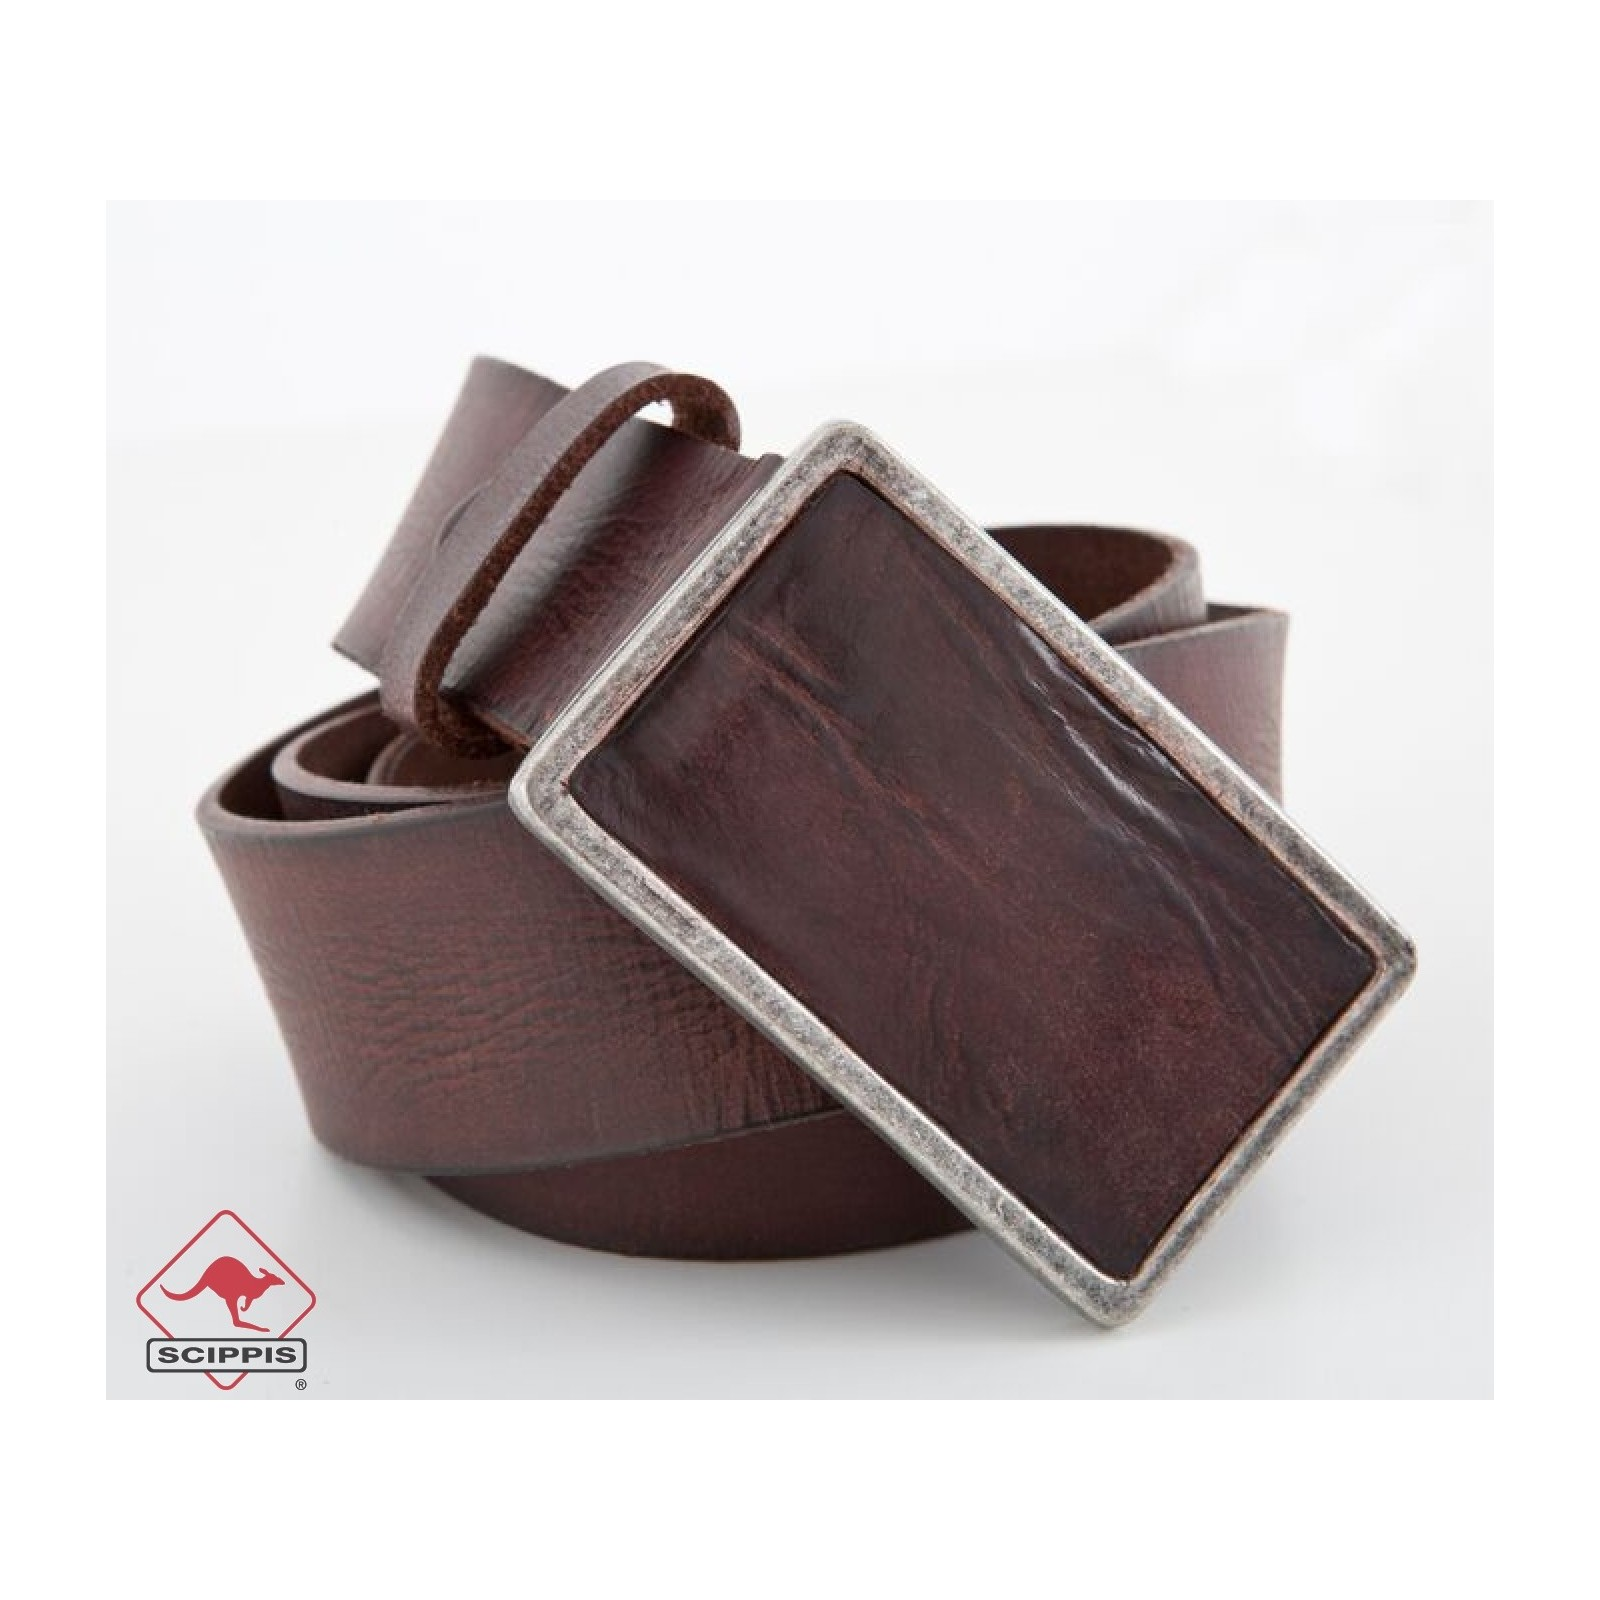 Scippis Fraser Leather Belt